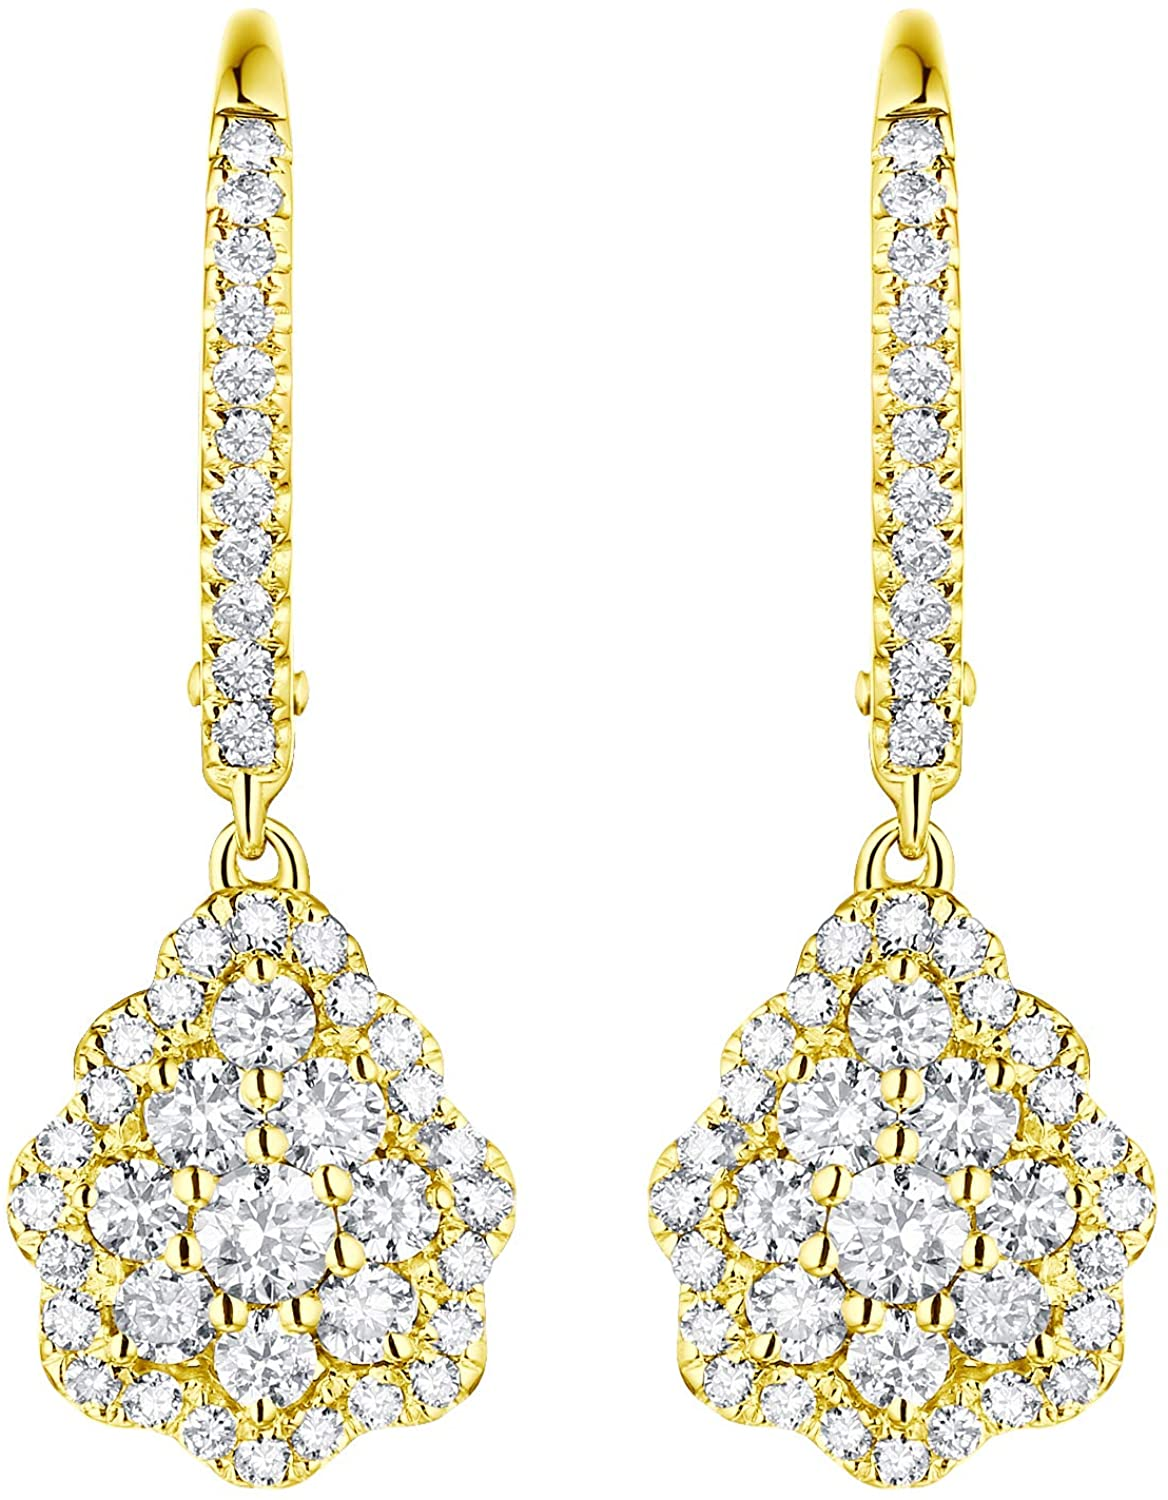 Prism Jewel 0.92Ct Natural G-H/SI1 White Diamond Dangling Lever Back Earrings Crafted In Gold